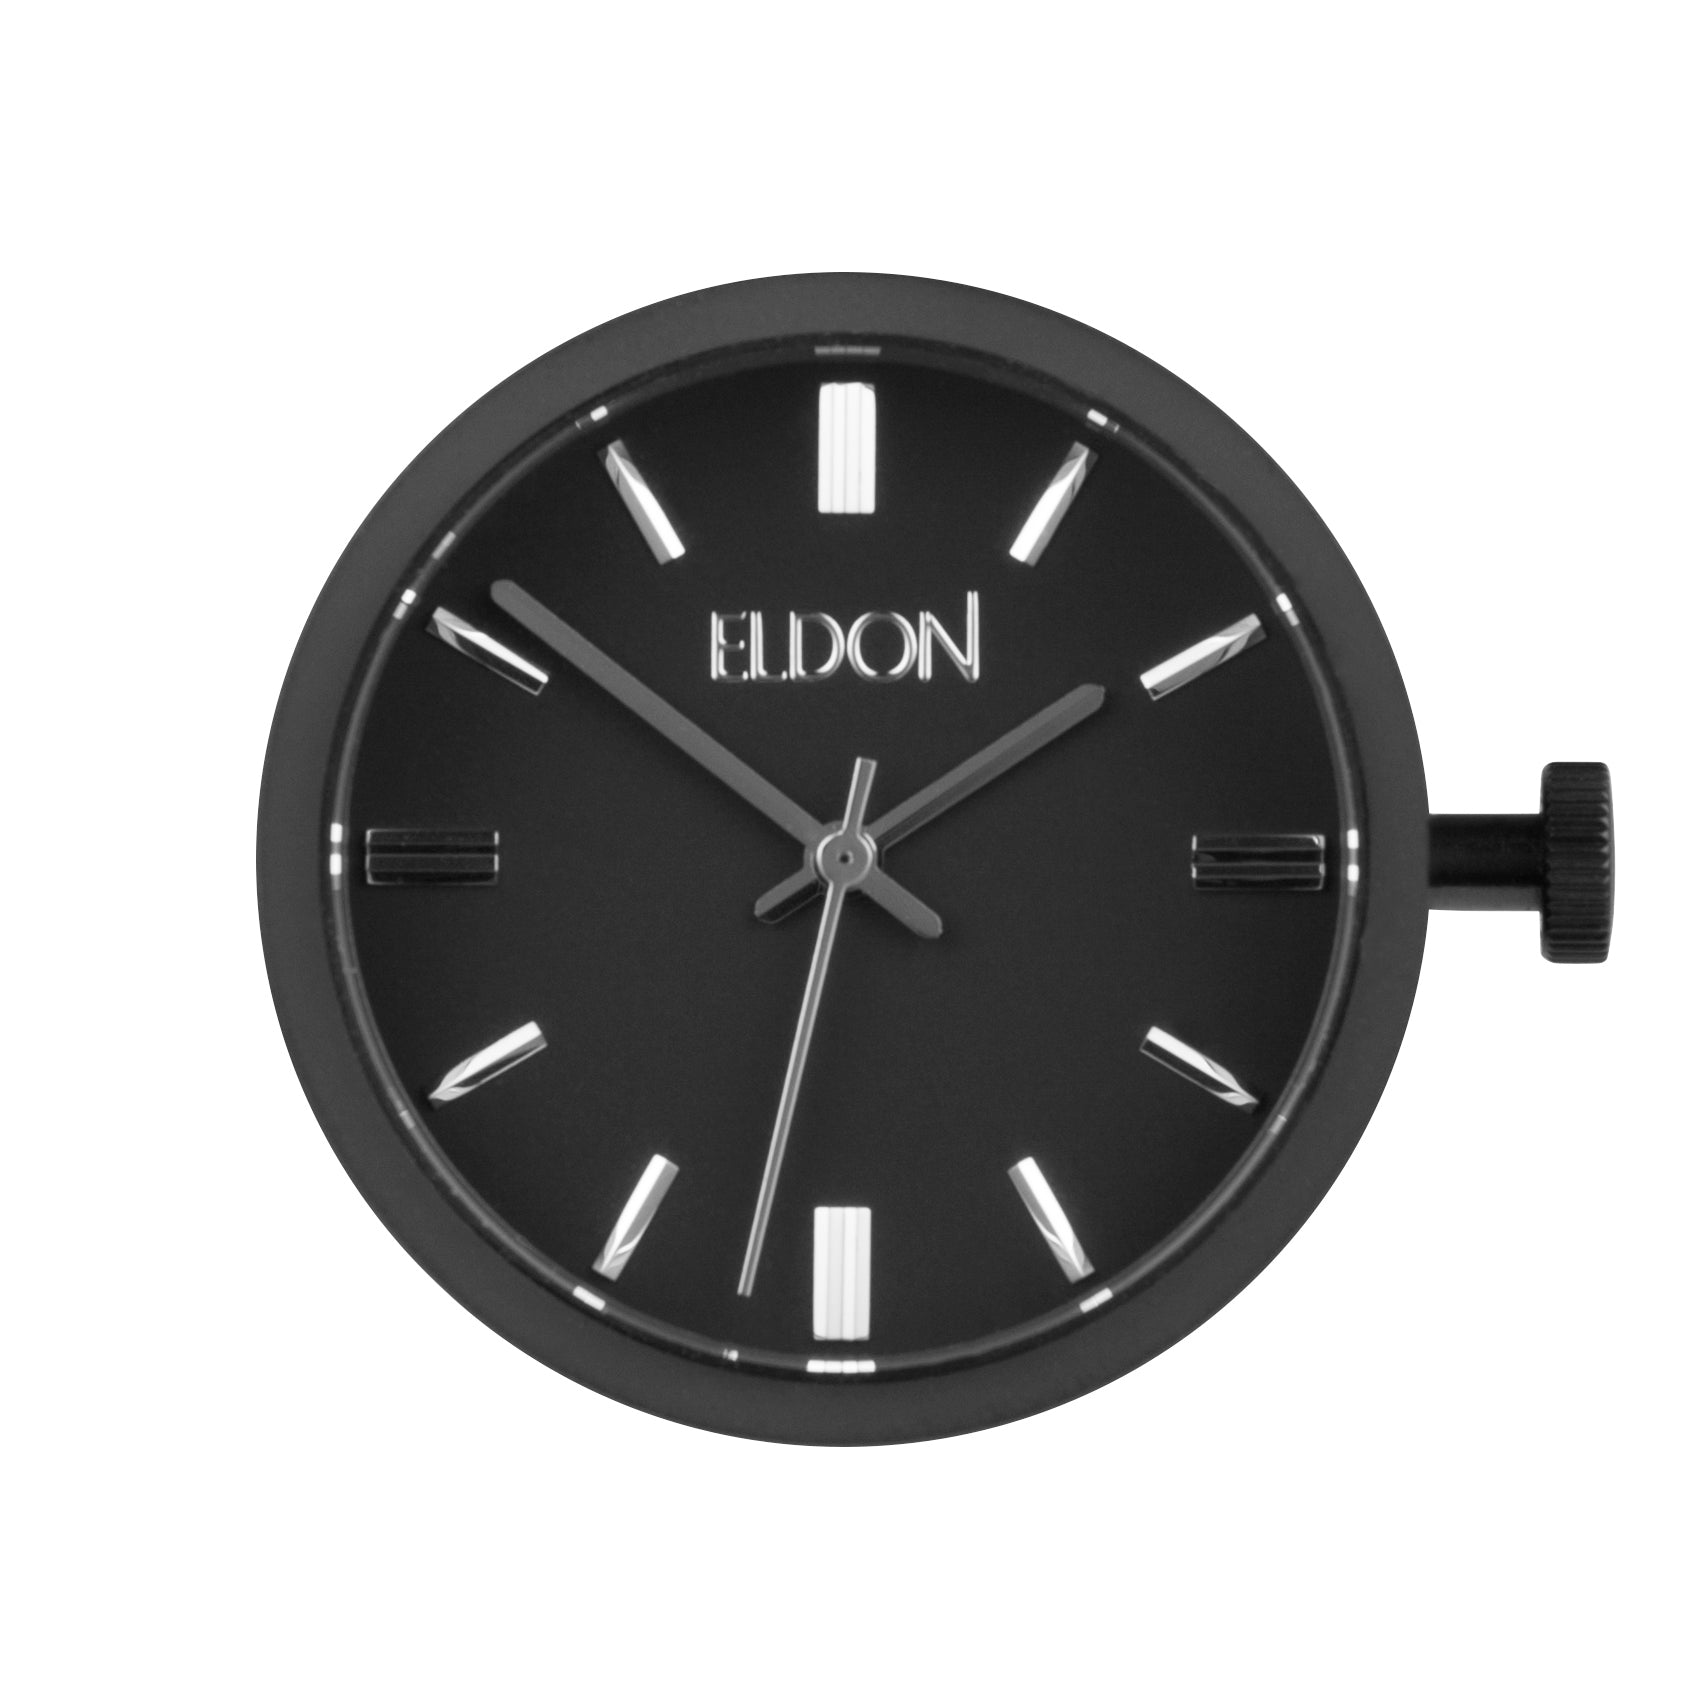 Eldon Watches - Modular The Classic Face - Interchangeable Watch